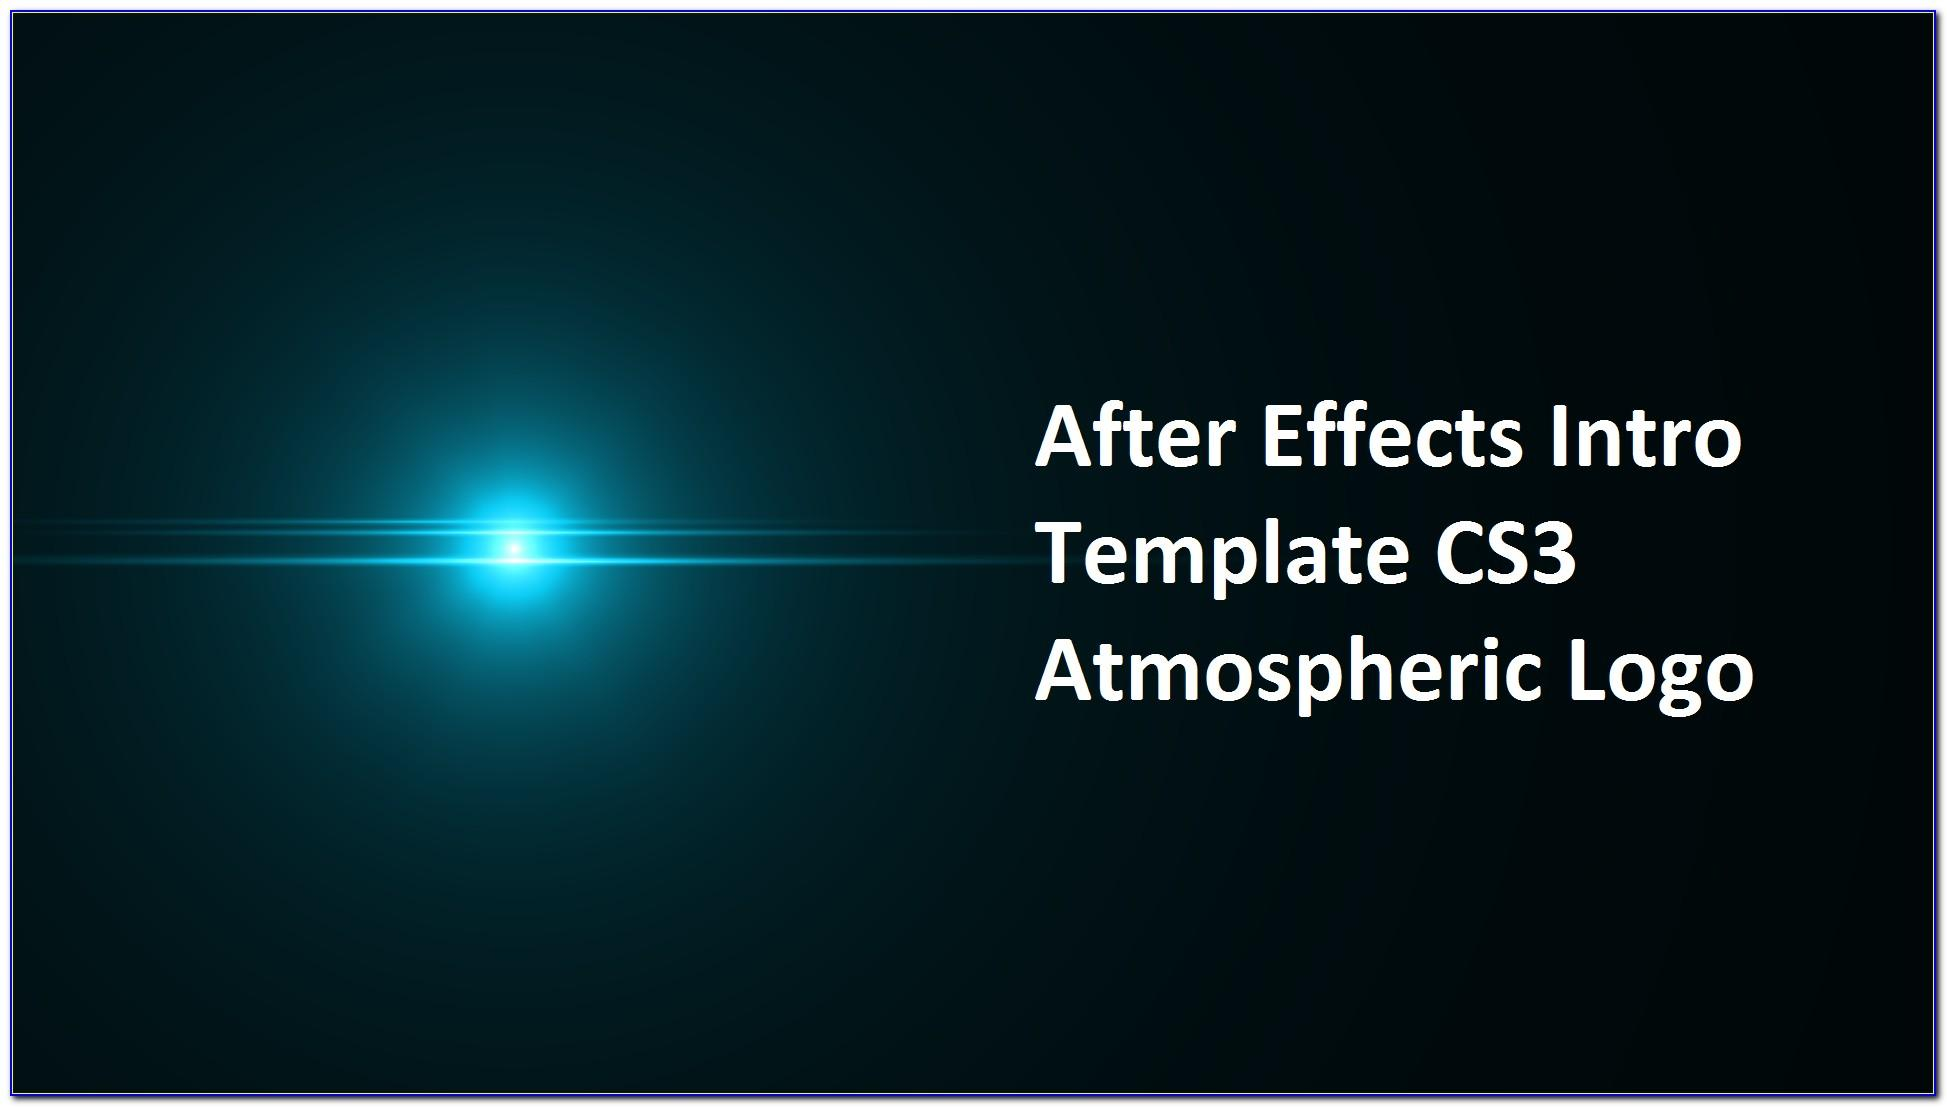 Adobe After Effects Cs3 Intro Templates Free Download